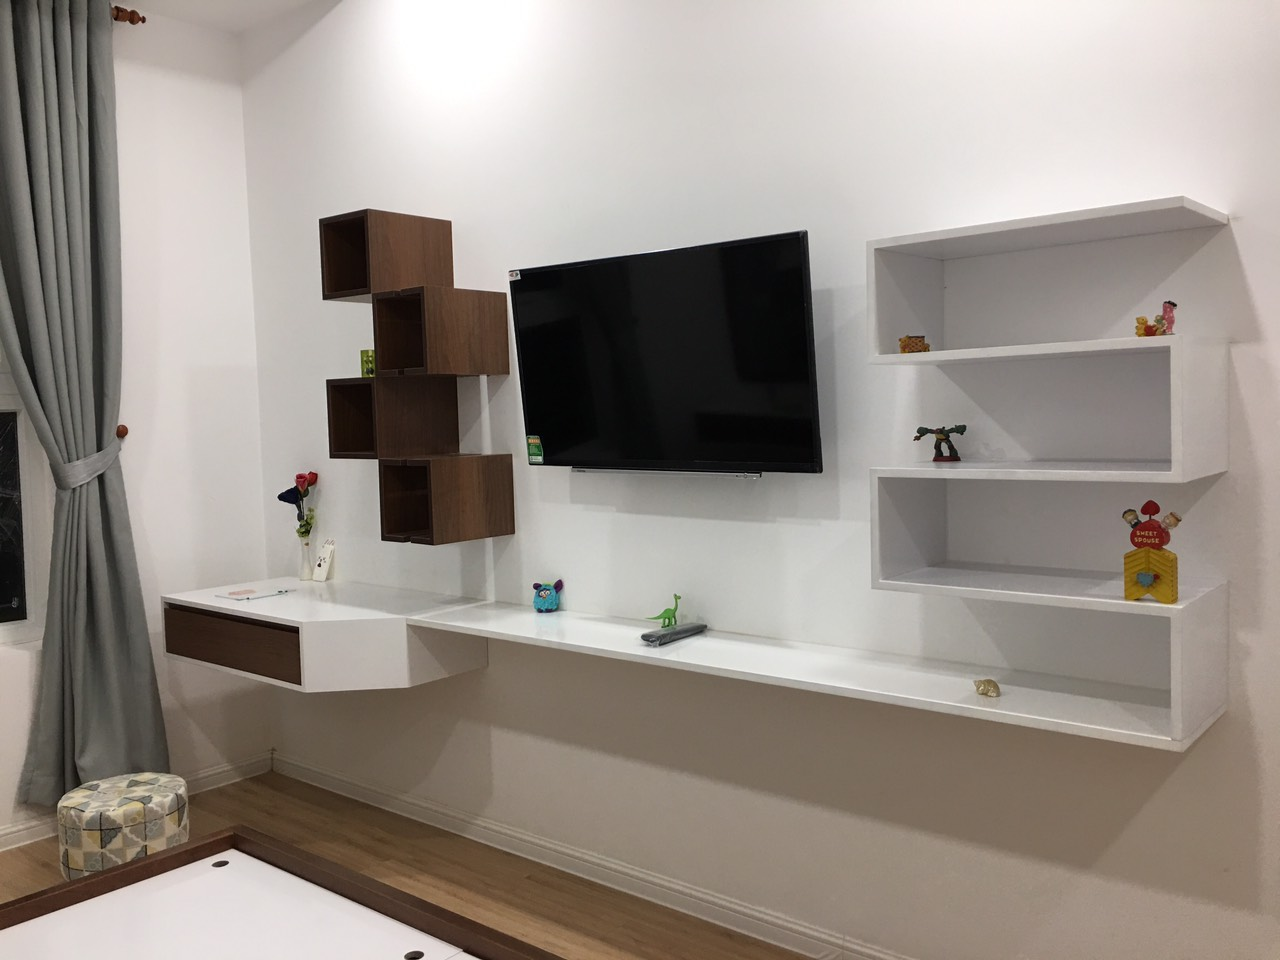 rent Xi Grand Court - 2 bedroom - 2 wc